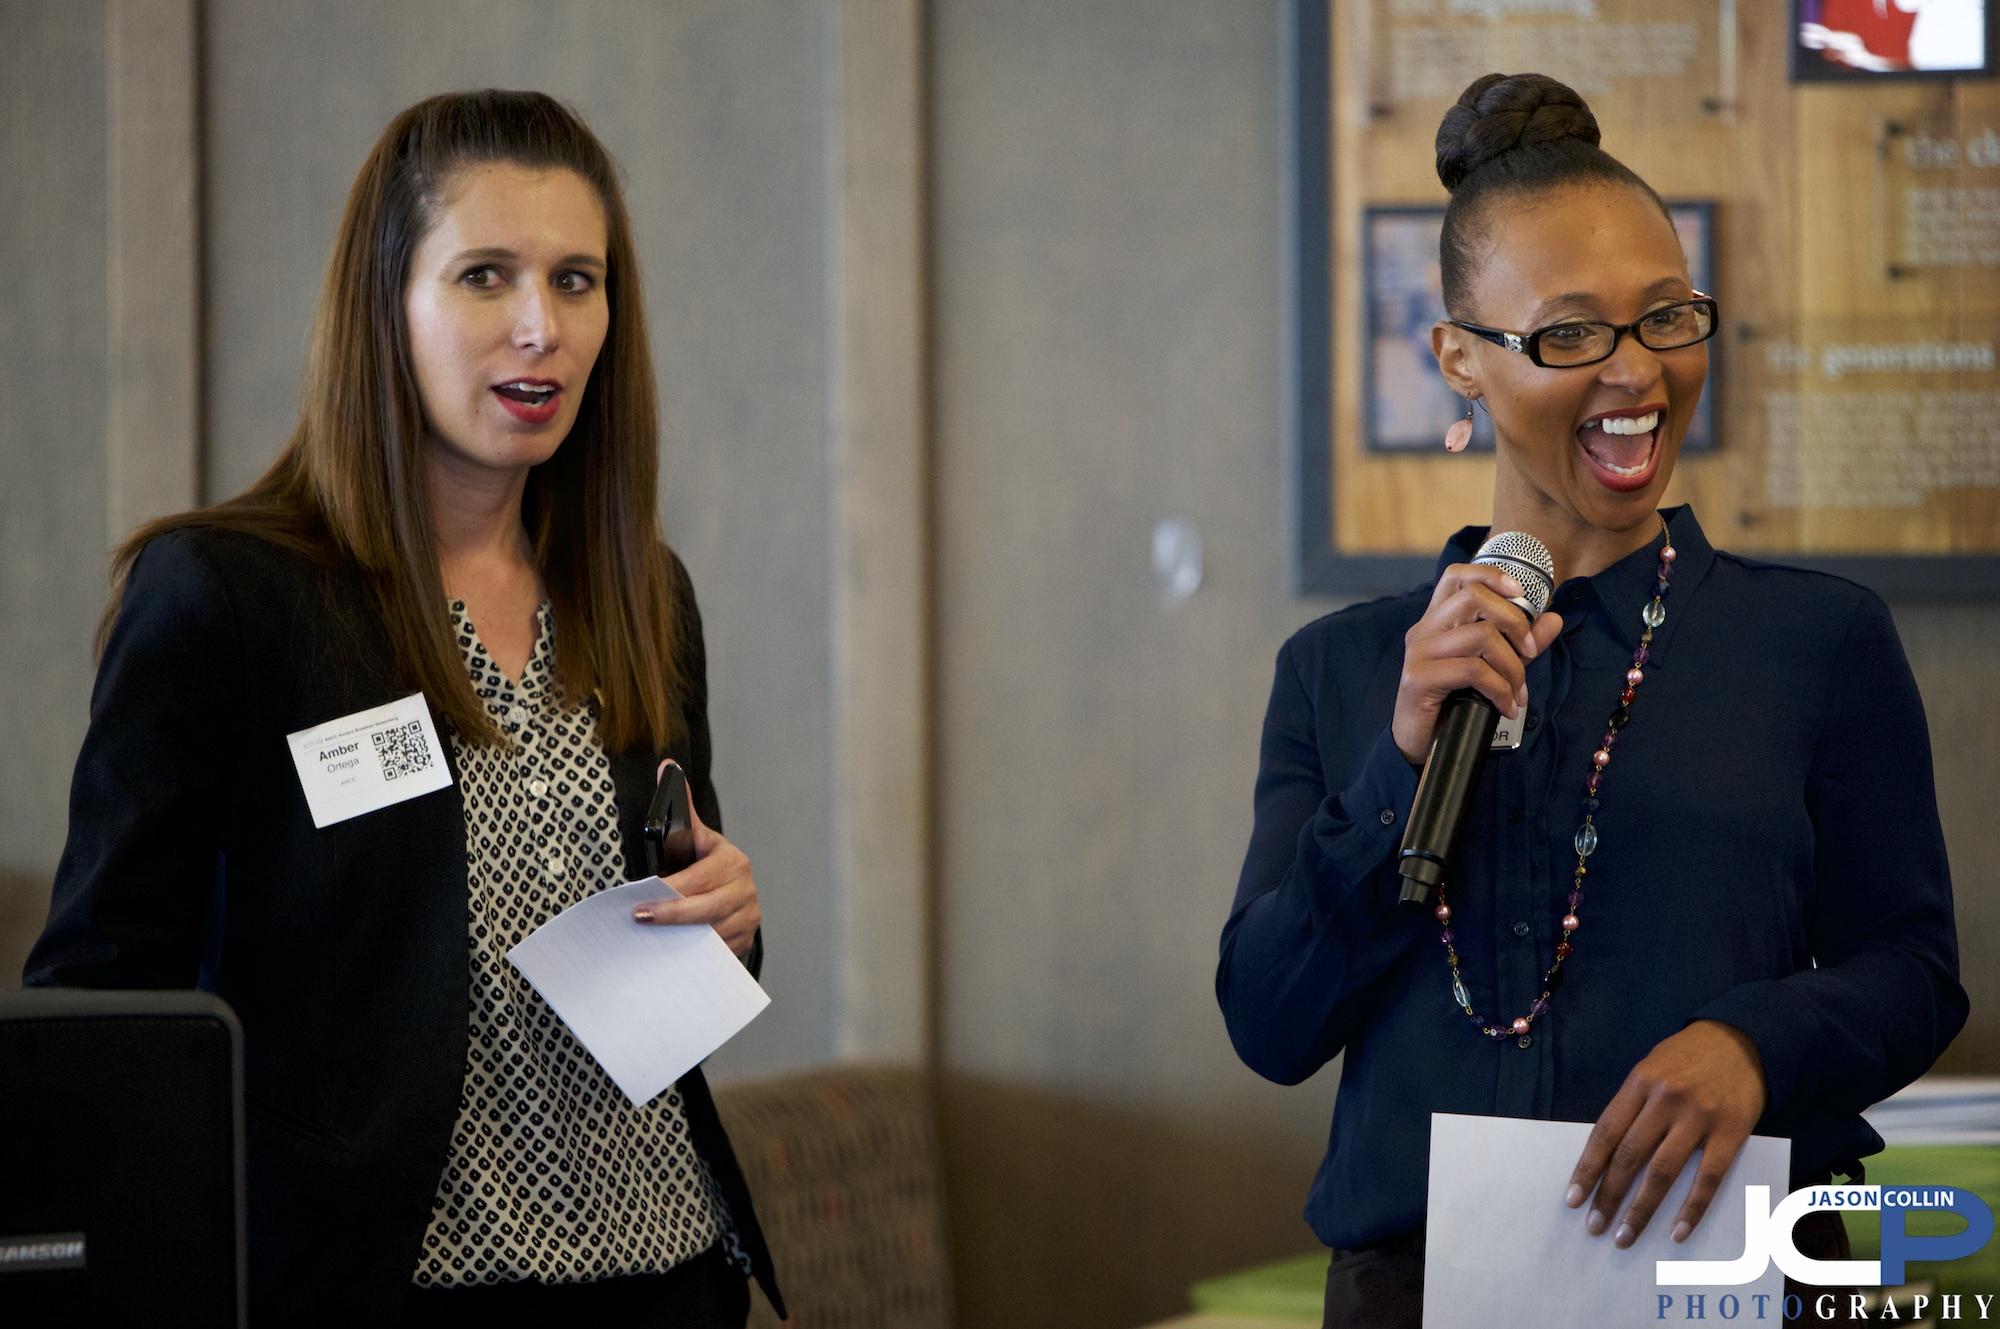 Do you have this much fun at the networking events you go to? Albuquerque, New Mexico event photography at Amigos Breakfast